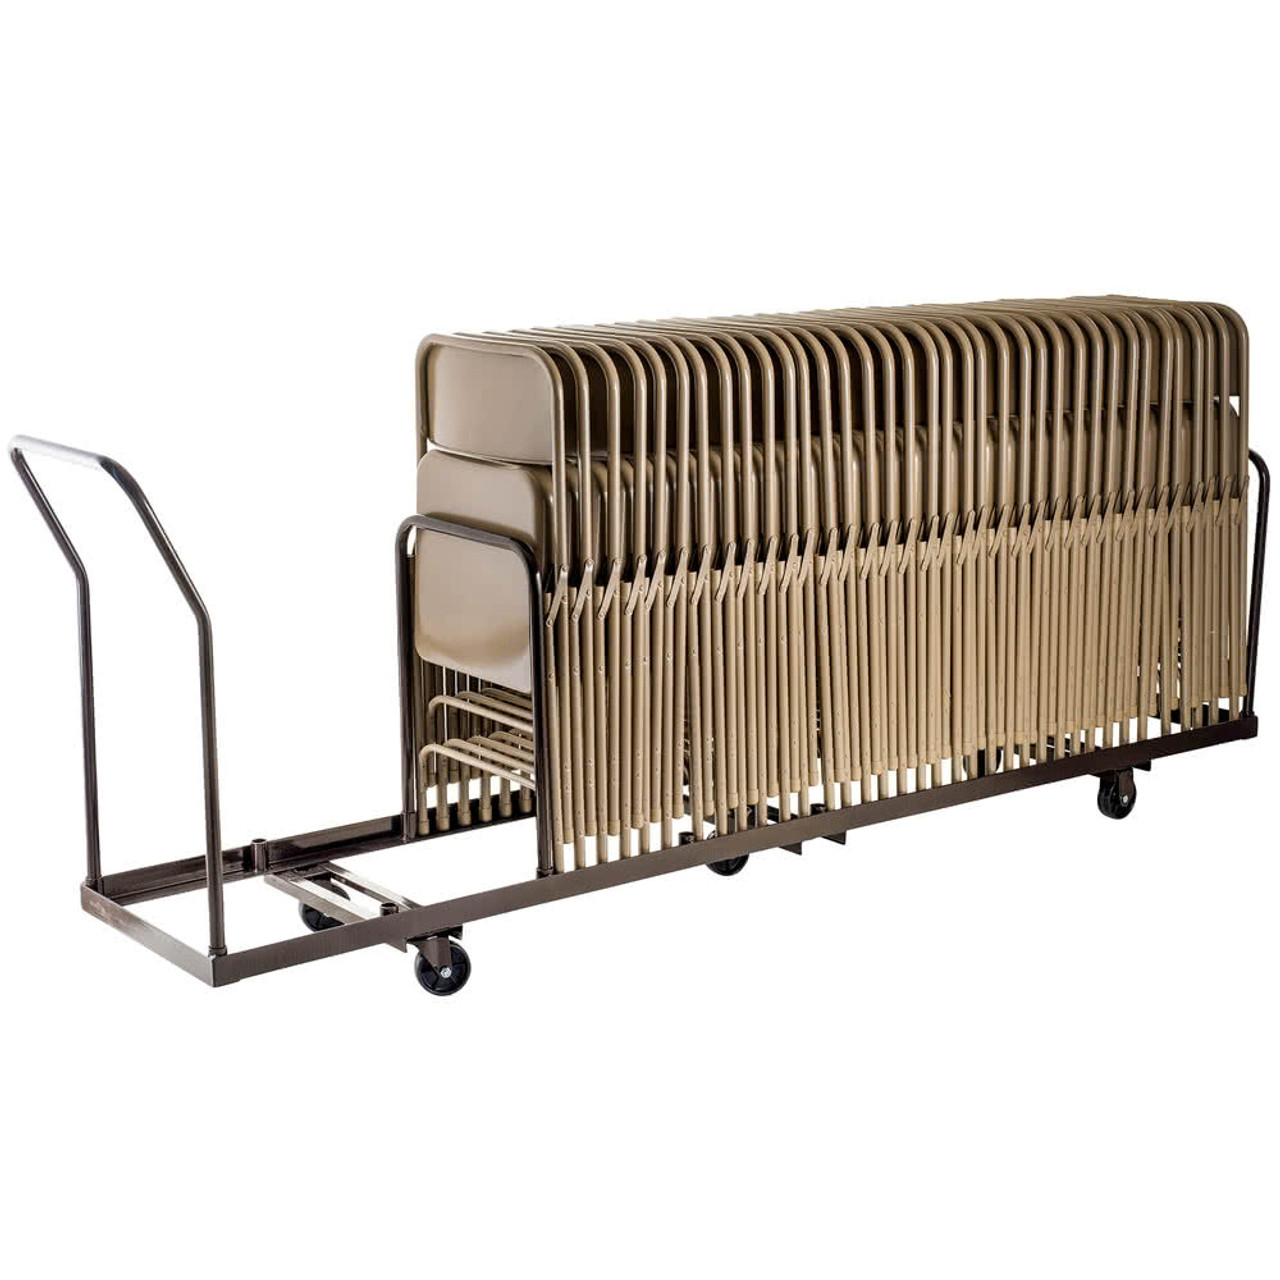 Miraculous 50 Capacity Linear Storage And Transport Folding Chair Dolly By National Public Seating Model Dy 50 Beatyapartments Chair Design Images Beatyapartmentscom